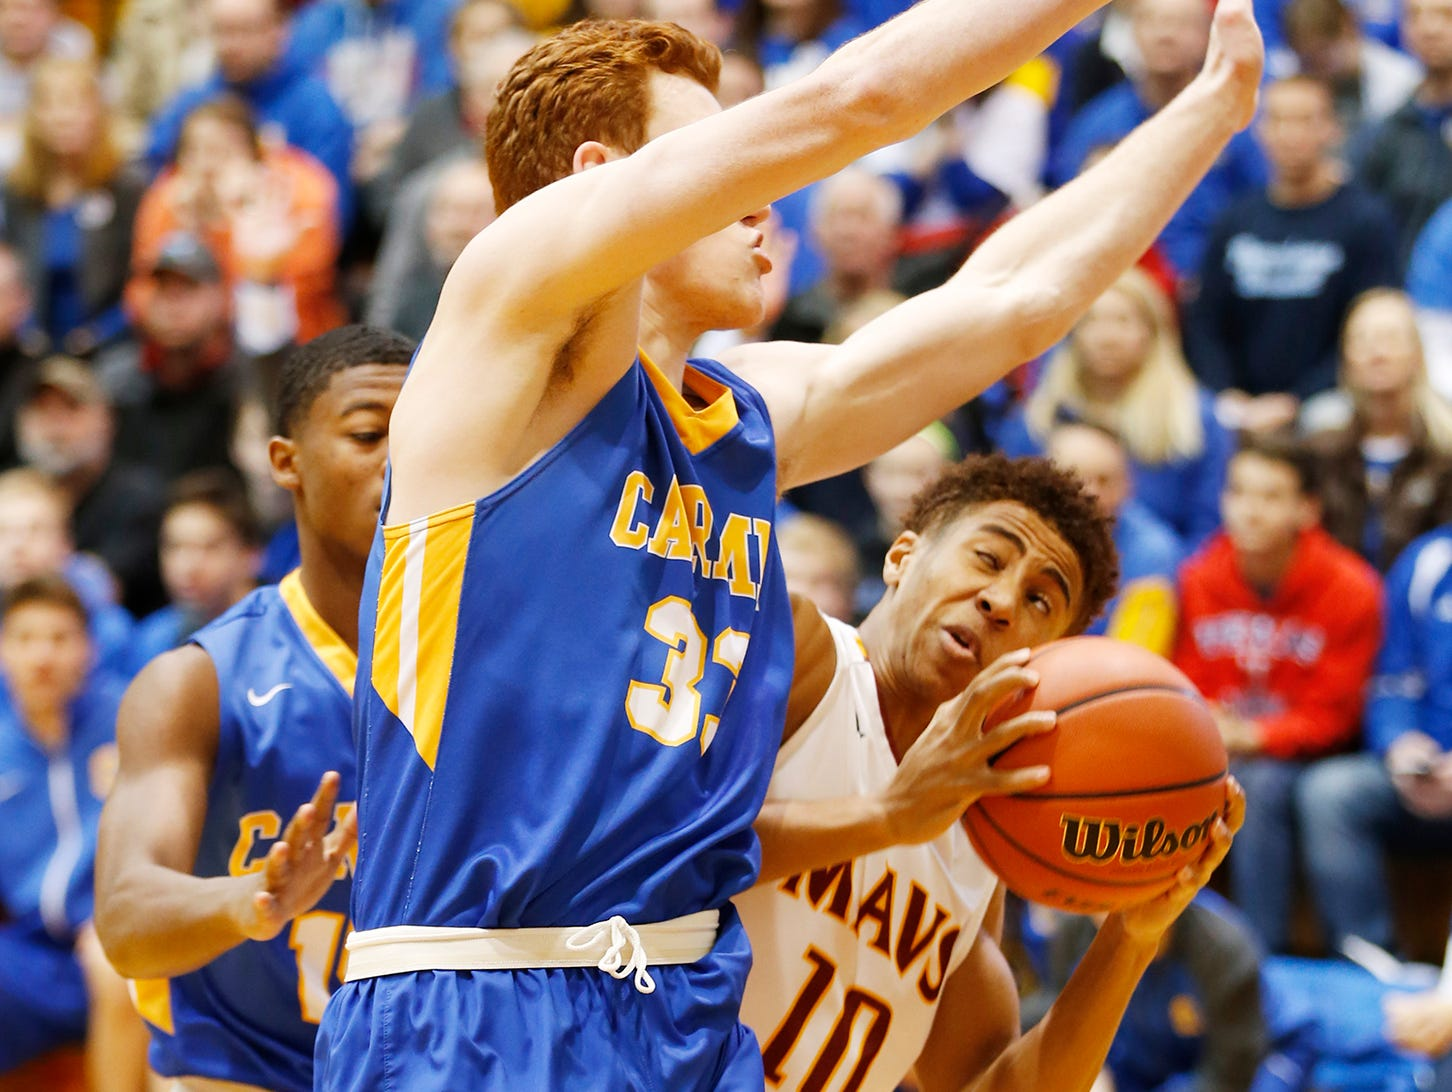 Carmel's John Michael Mulloy blocks the path of McCutcheon's Robert Phinisee in the Greyhounds' regional semifinal win at Logansport. Carmel lost in the final to Fort Wayne North Side.